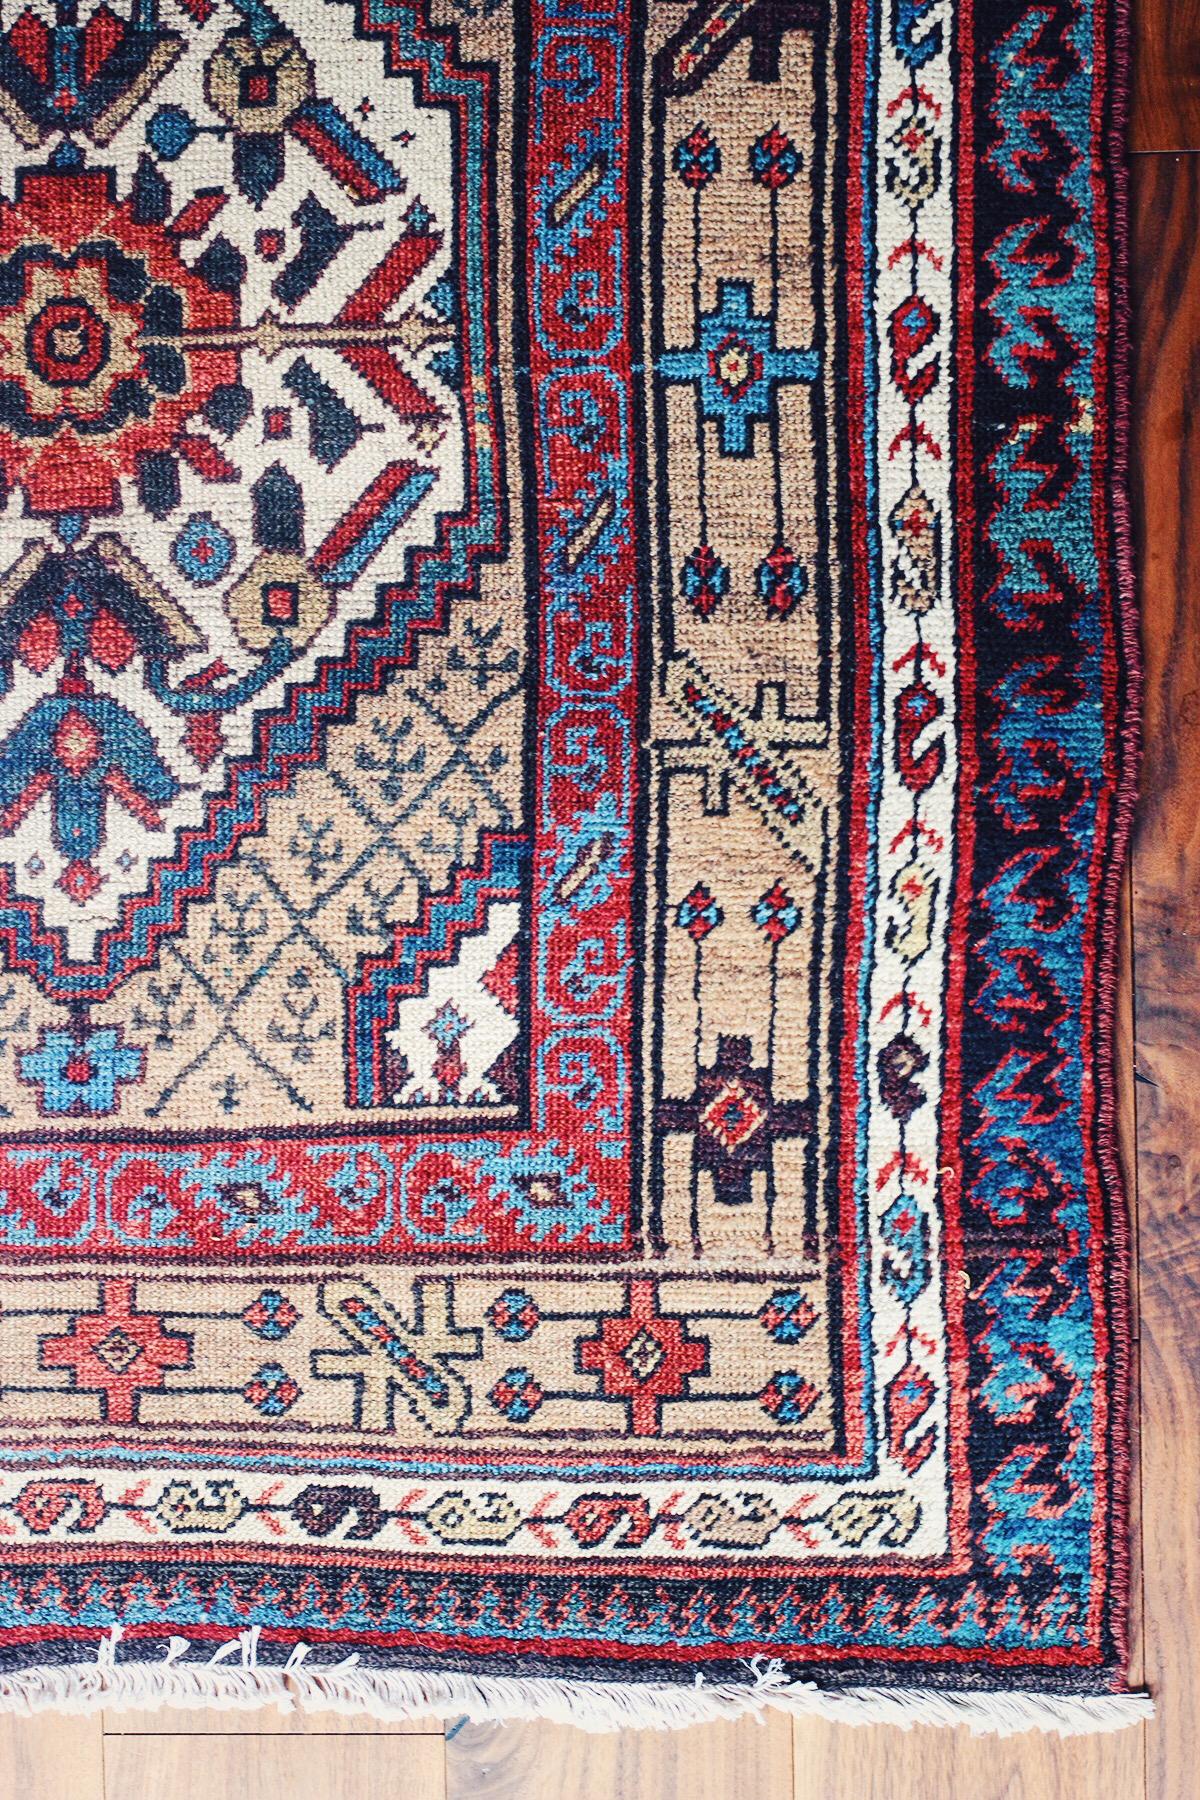 Finding The Right Antique Rug Honestly Wtf